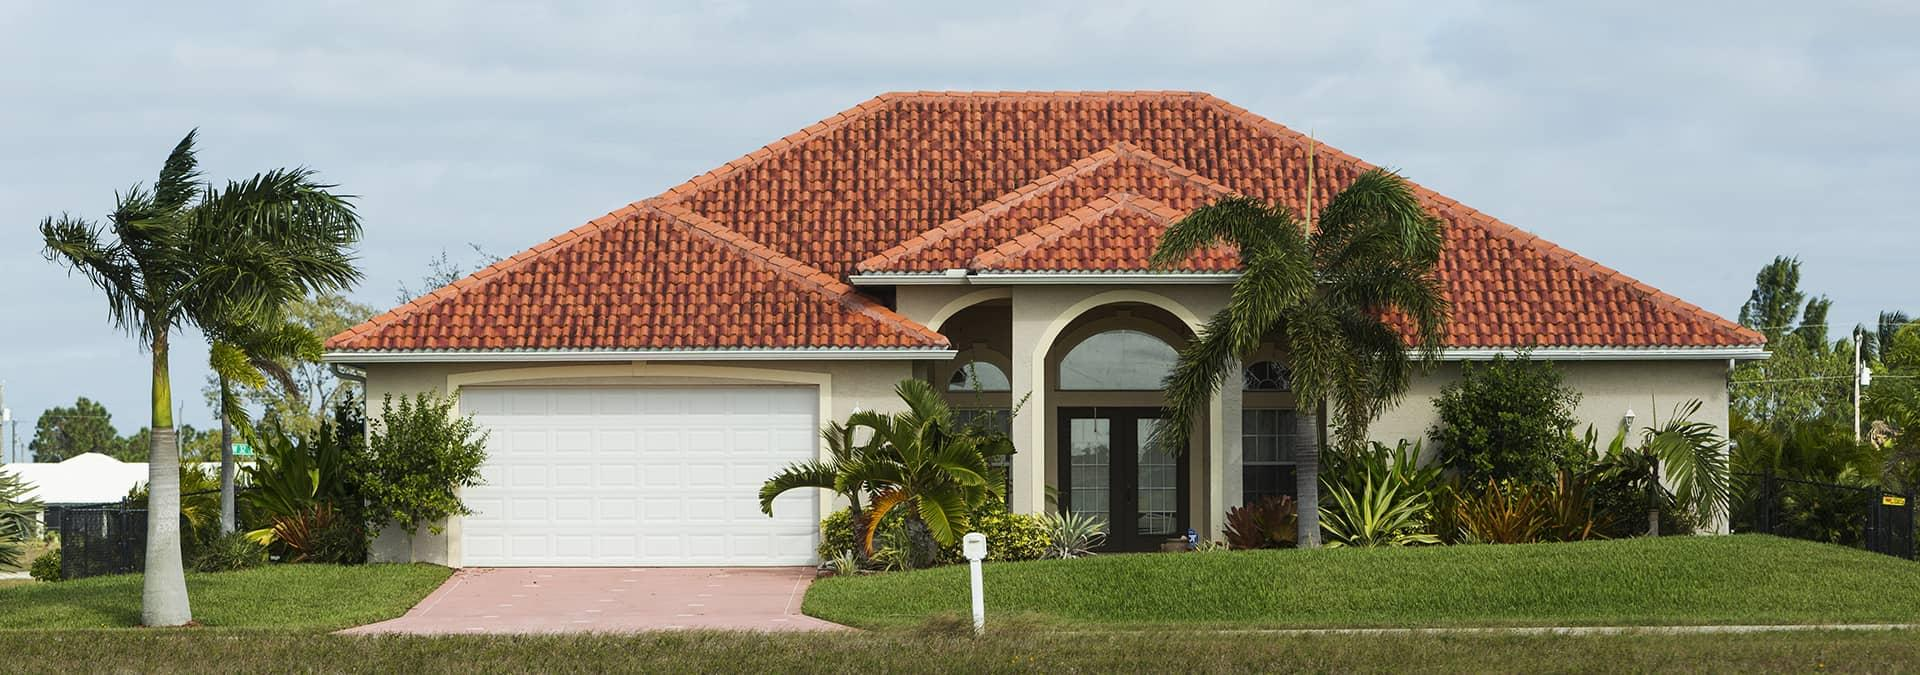 street view of a home in saint johns florida